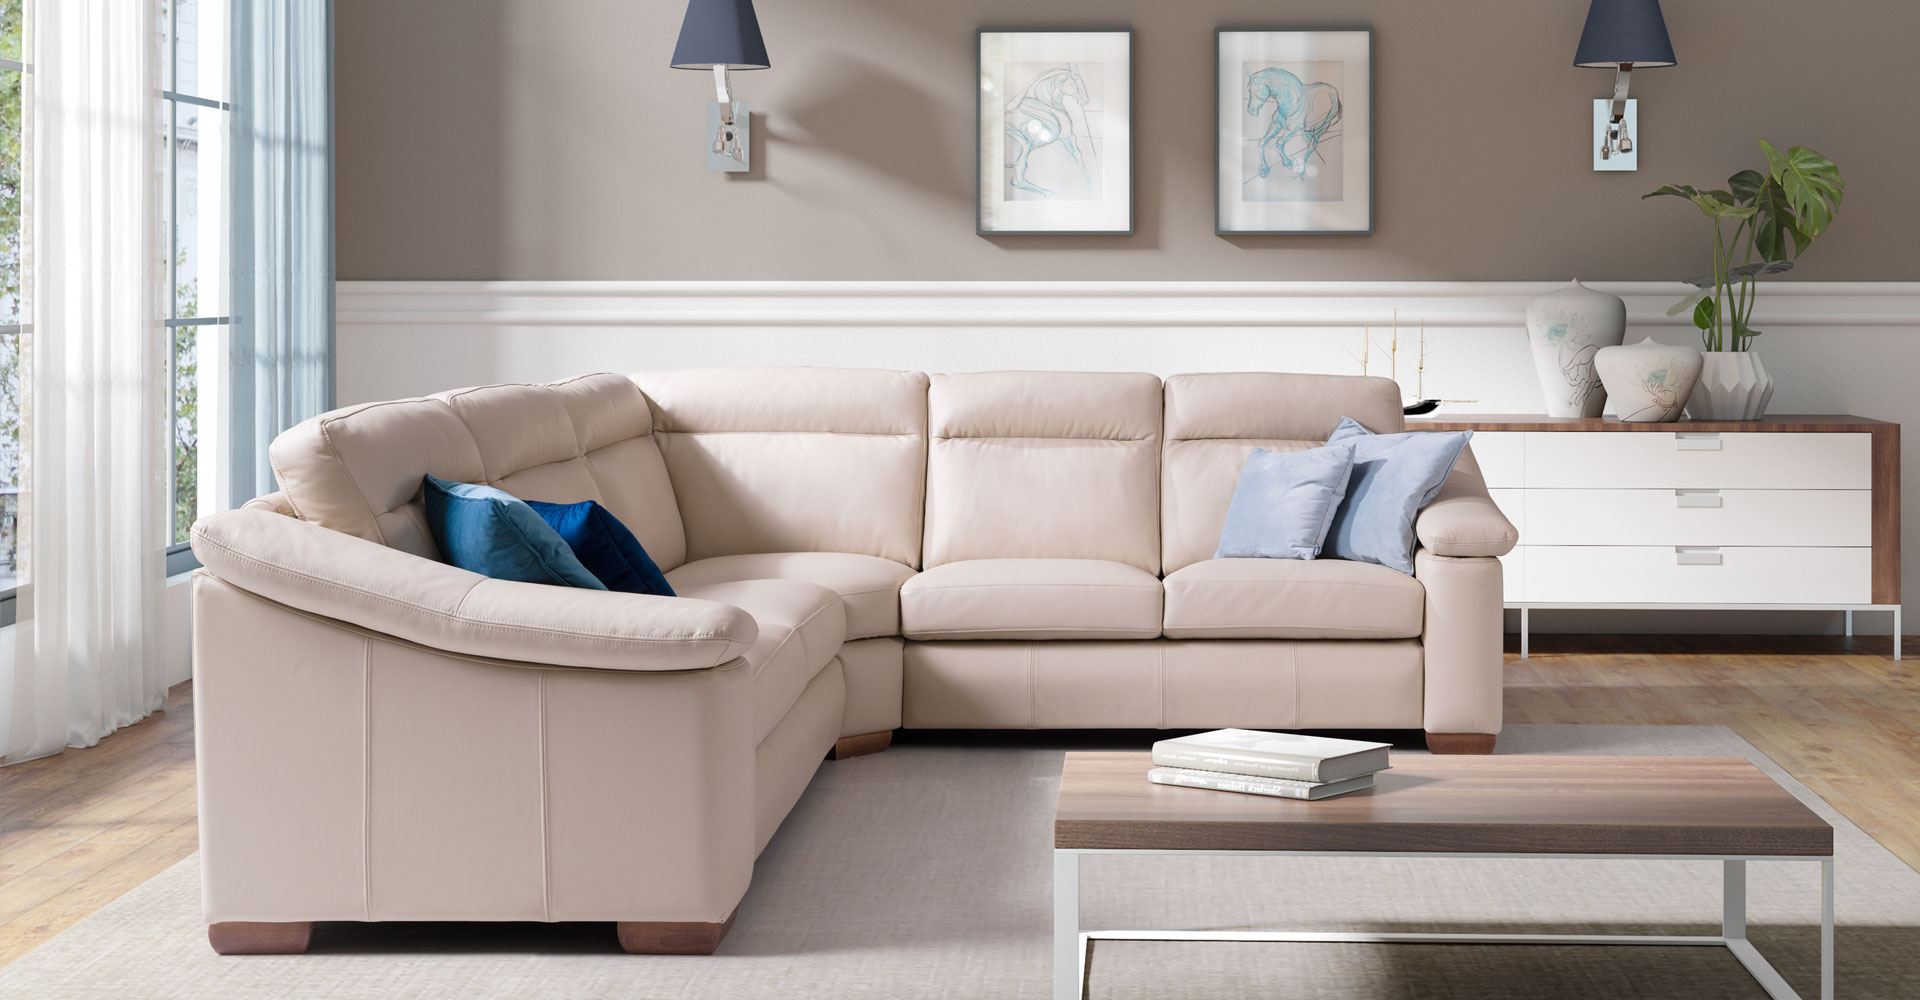 Italian genuine leather – choose your own. Types and colours. - get inspired by Smart Furniture online store